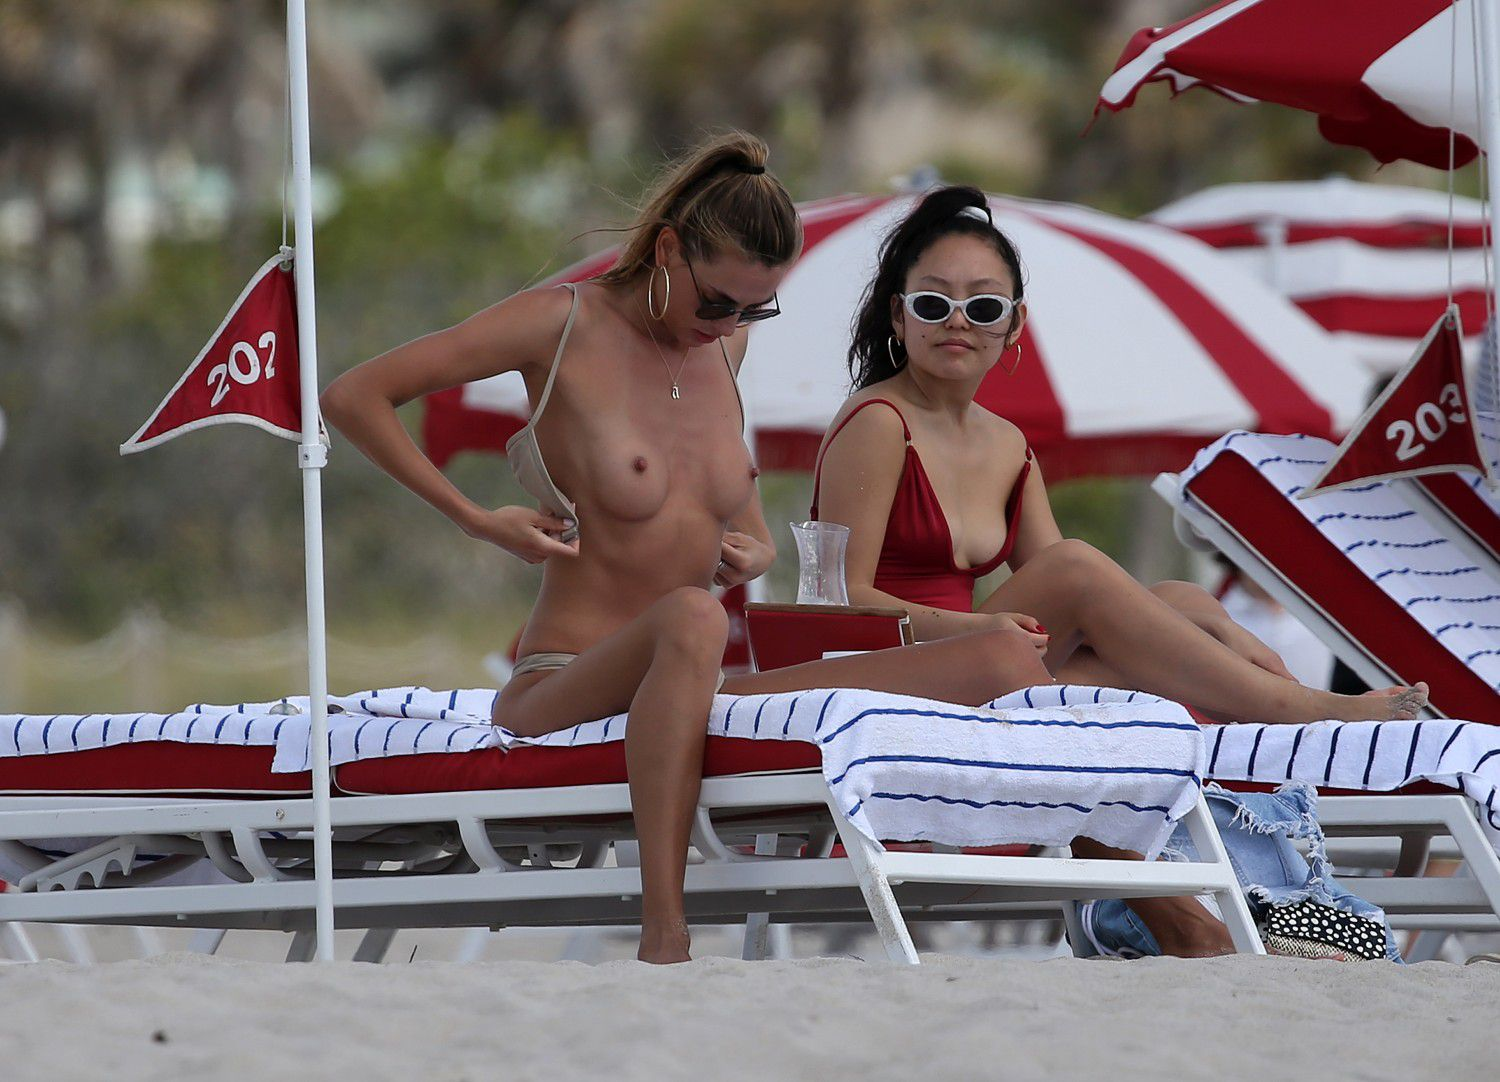 toni-garrn-sunbathing-topless-on-the-beach-in-miami-9721